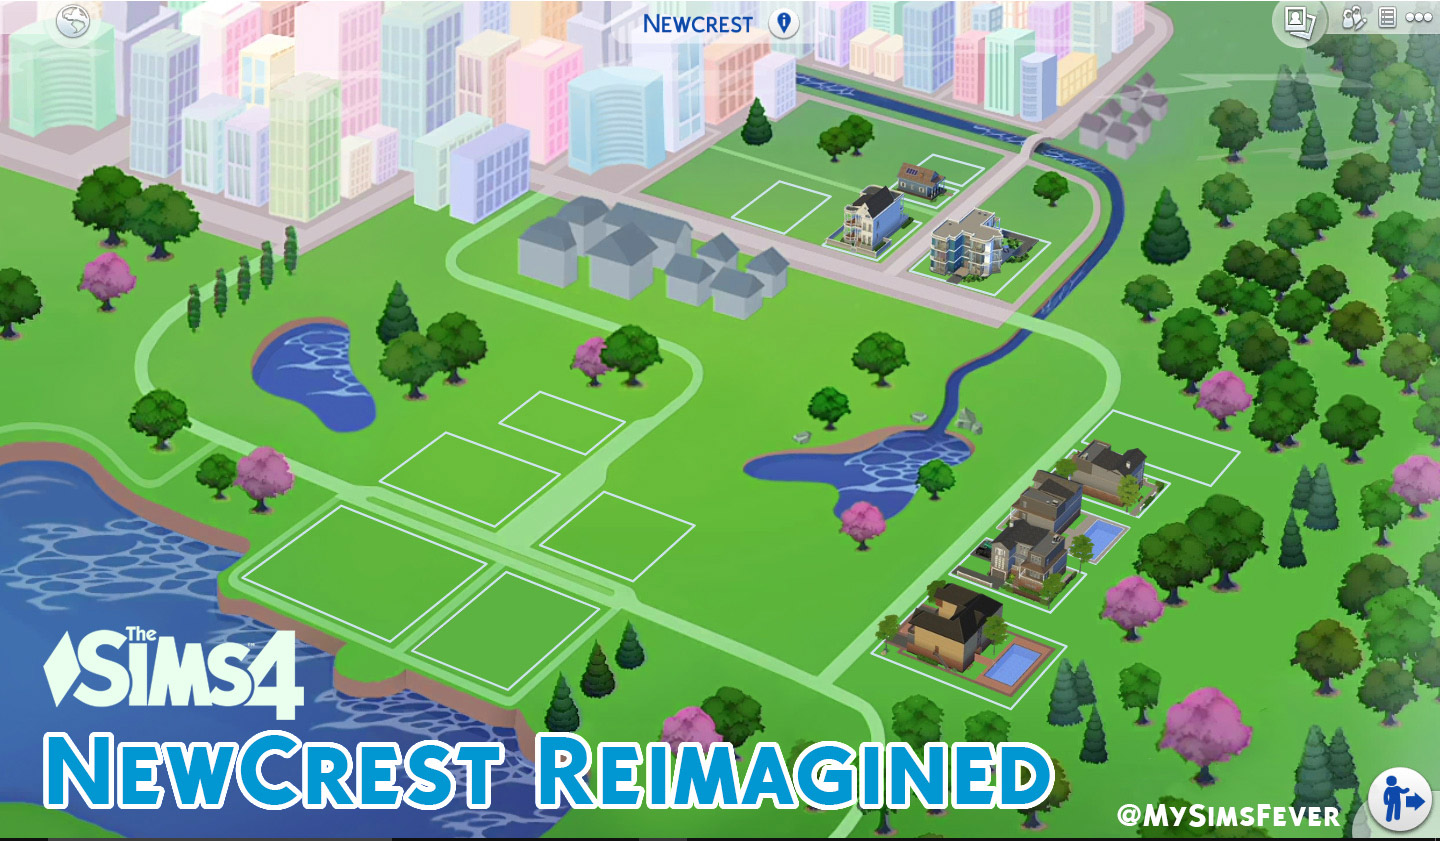 Newcrest Map Reimagined (Override) - The Sims 4 Catalog on sims castaway, sims 3 houses, sims 3 university life cover, sims 3 yacht, sims 3 map, sims 3 zombie apocalypse, sims 3 sunlit tides, sims 3 mods, sims 3 train, sims 3 world's best, sims 3 weather, sims medieval map,